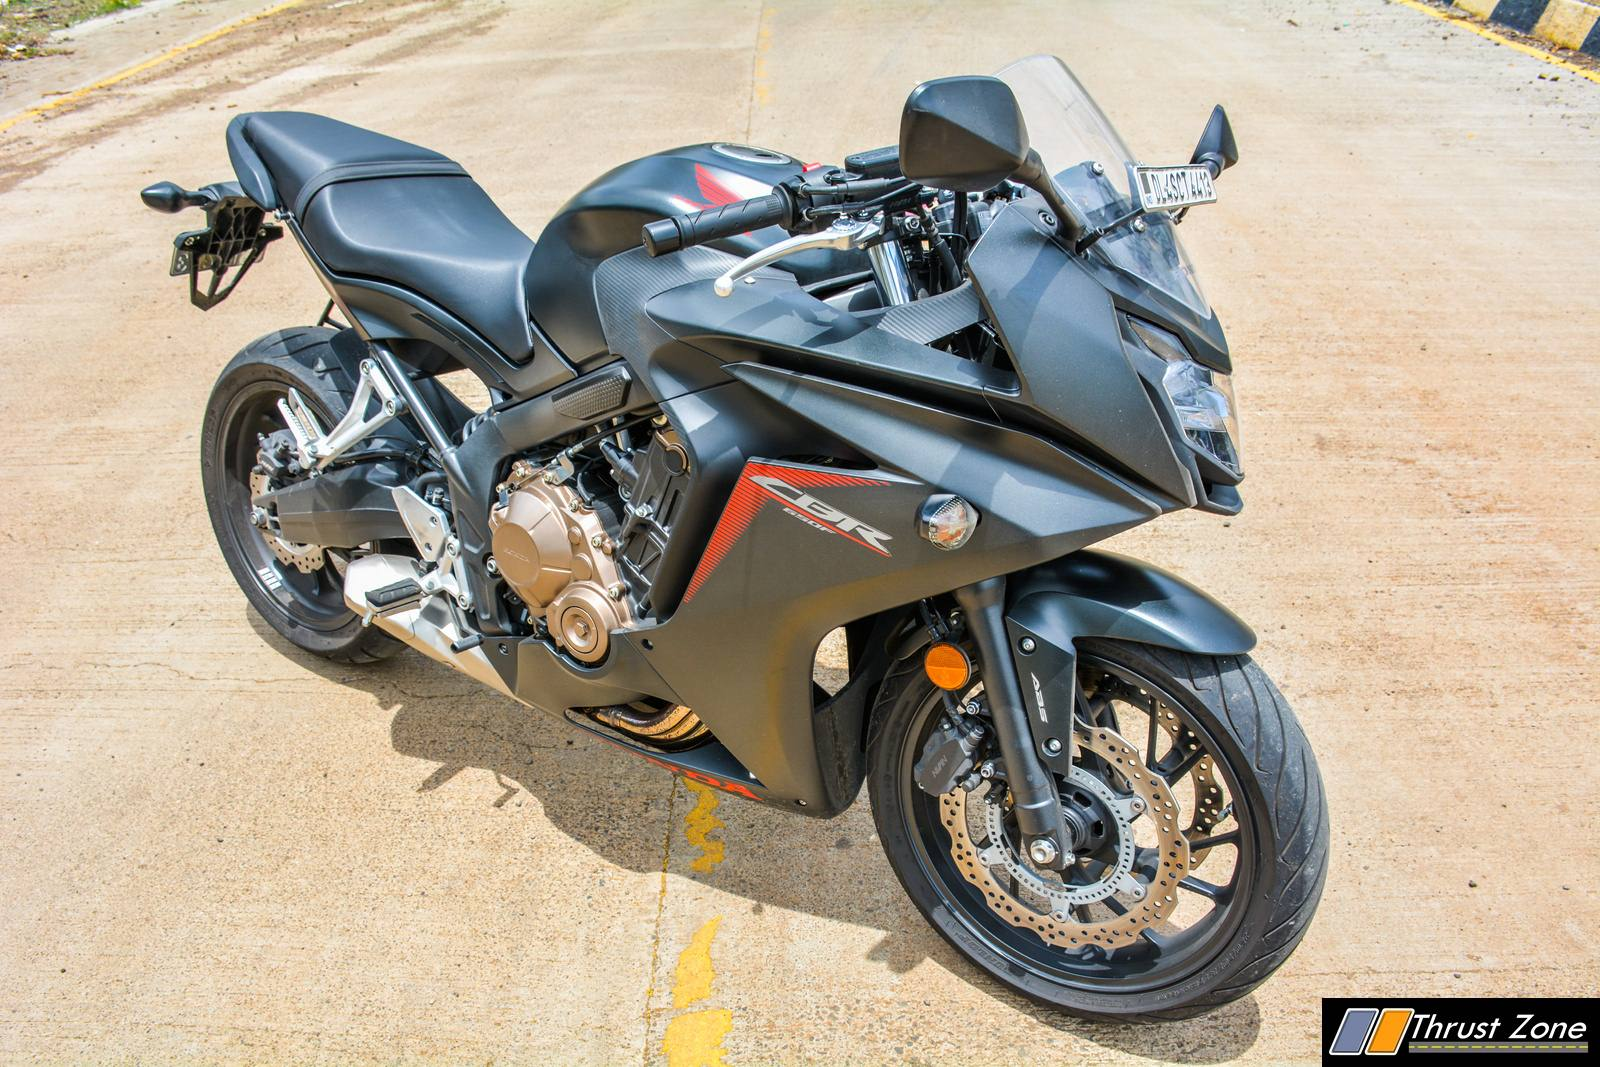 2018-Honda-CBR650F-India-Review-13